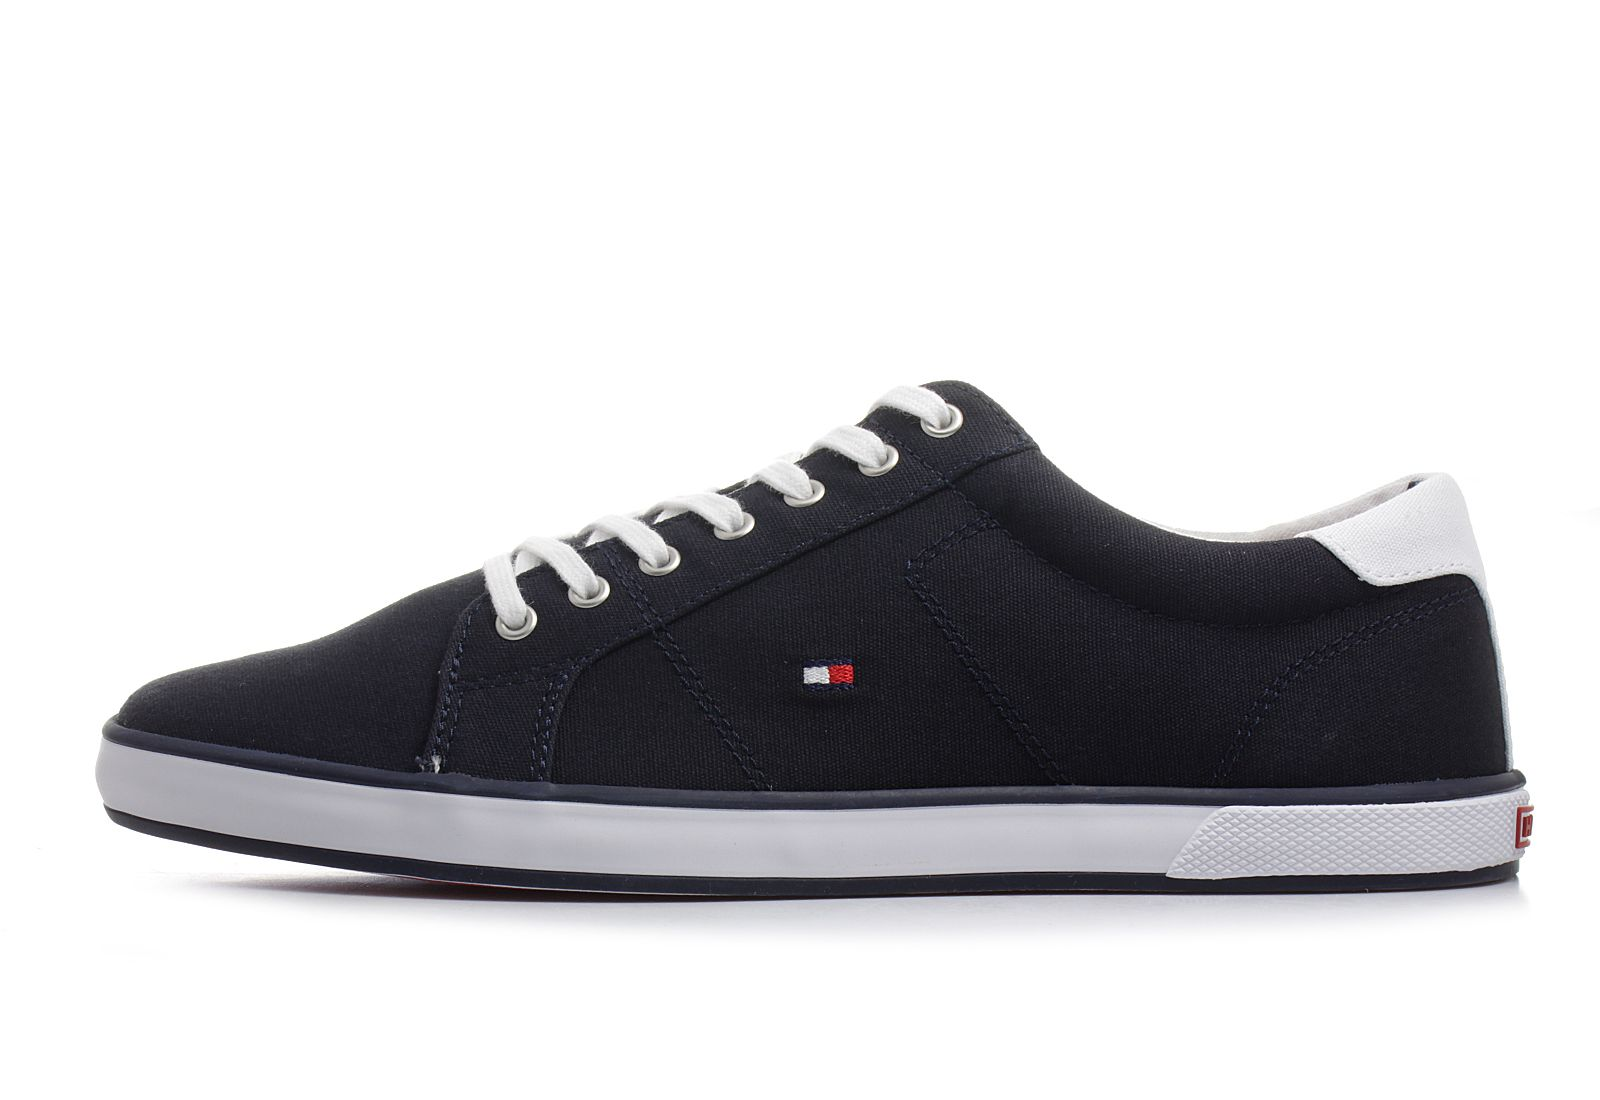 22fa1e77151d4 Tommy Hilfiger Shoes - Harlow 1 - 17S-0596-403 - Online shop for ...